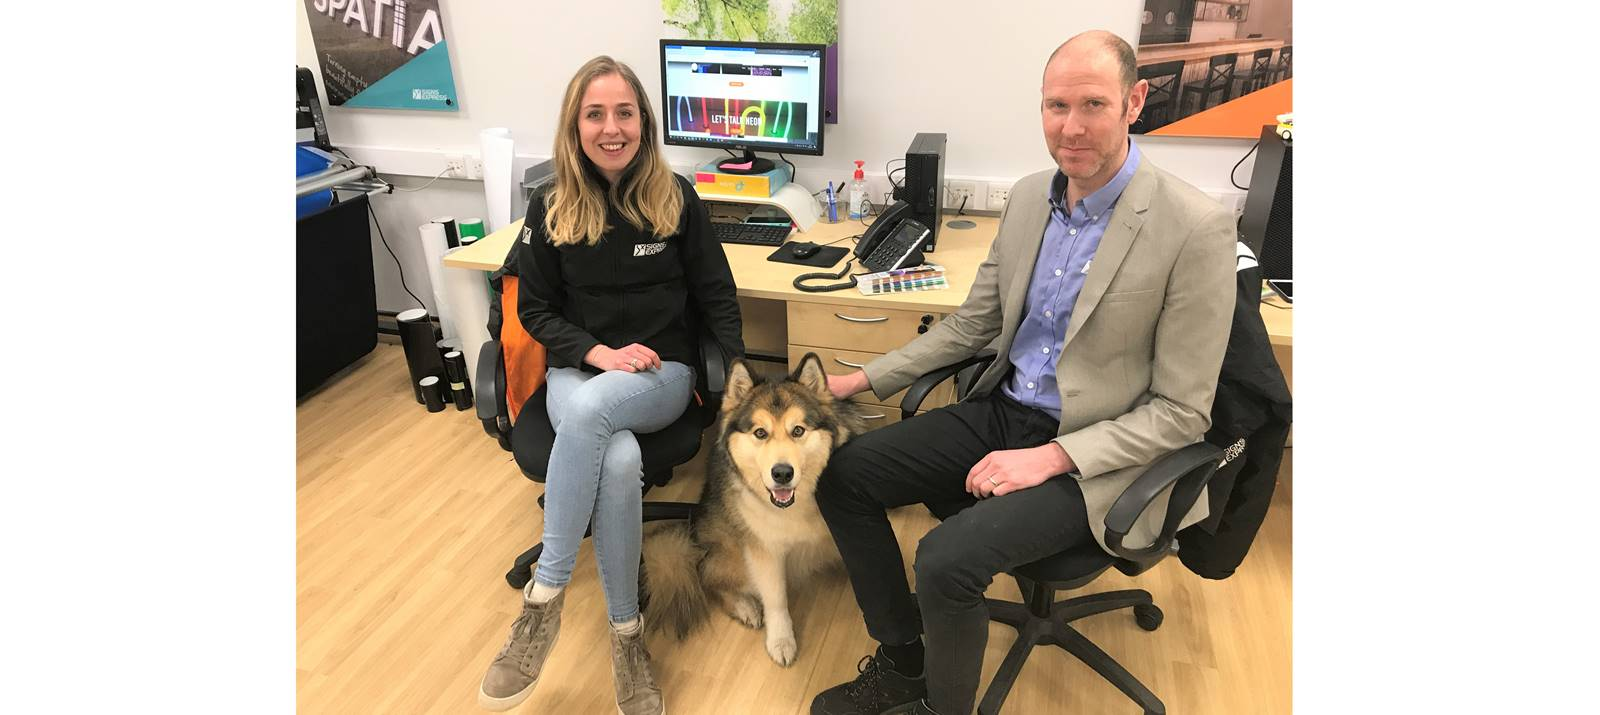 Signs Express Welcomes New Team Members